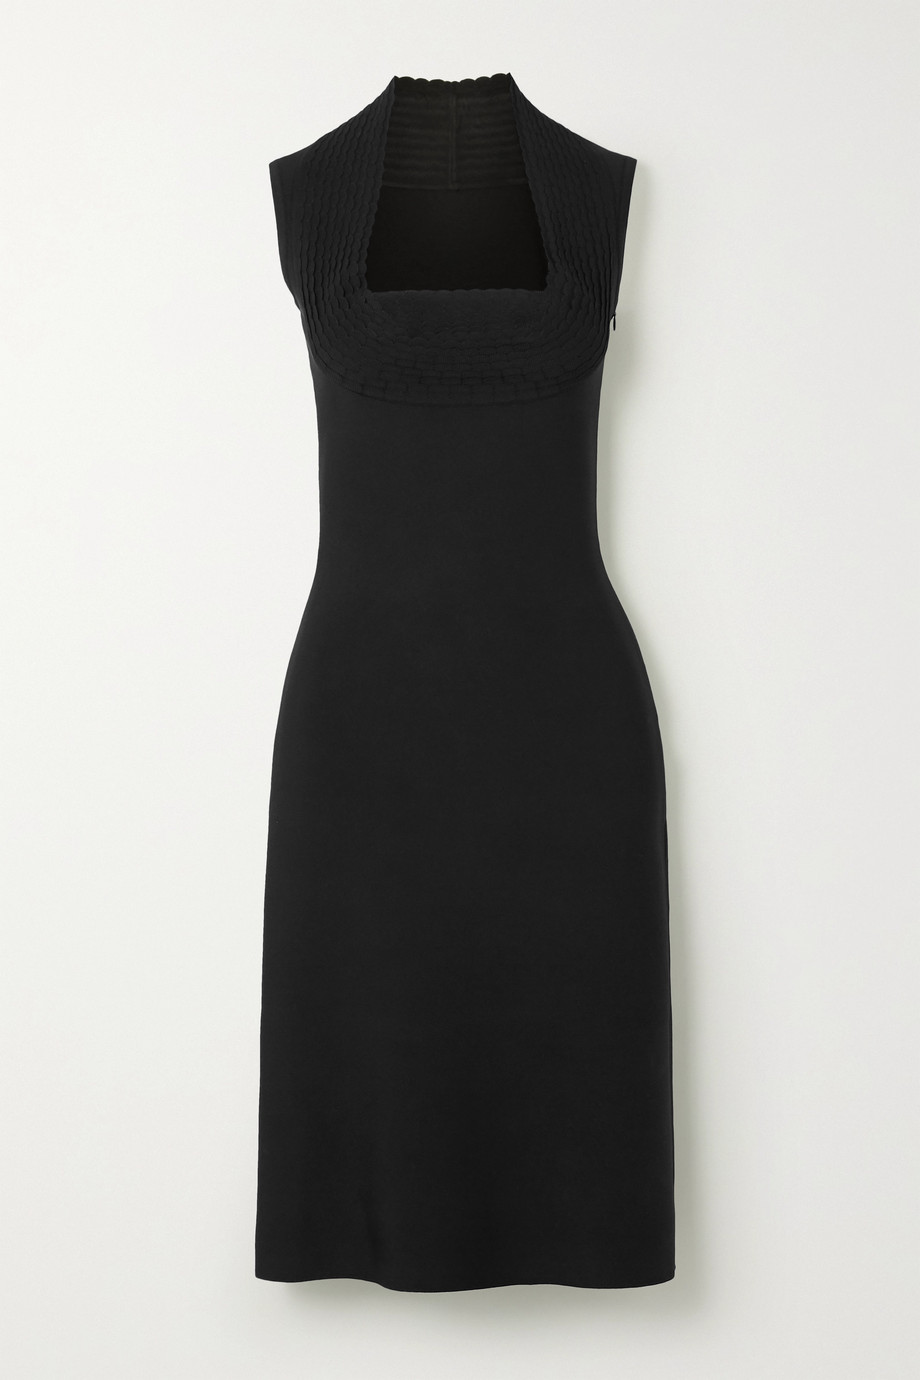 Alaïa Scalloped stretch-knit midi dress